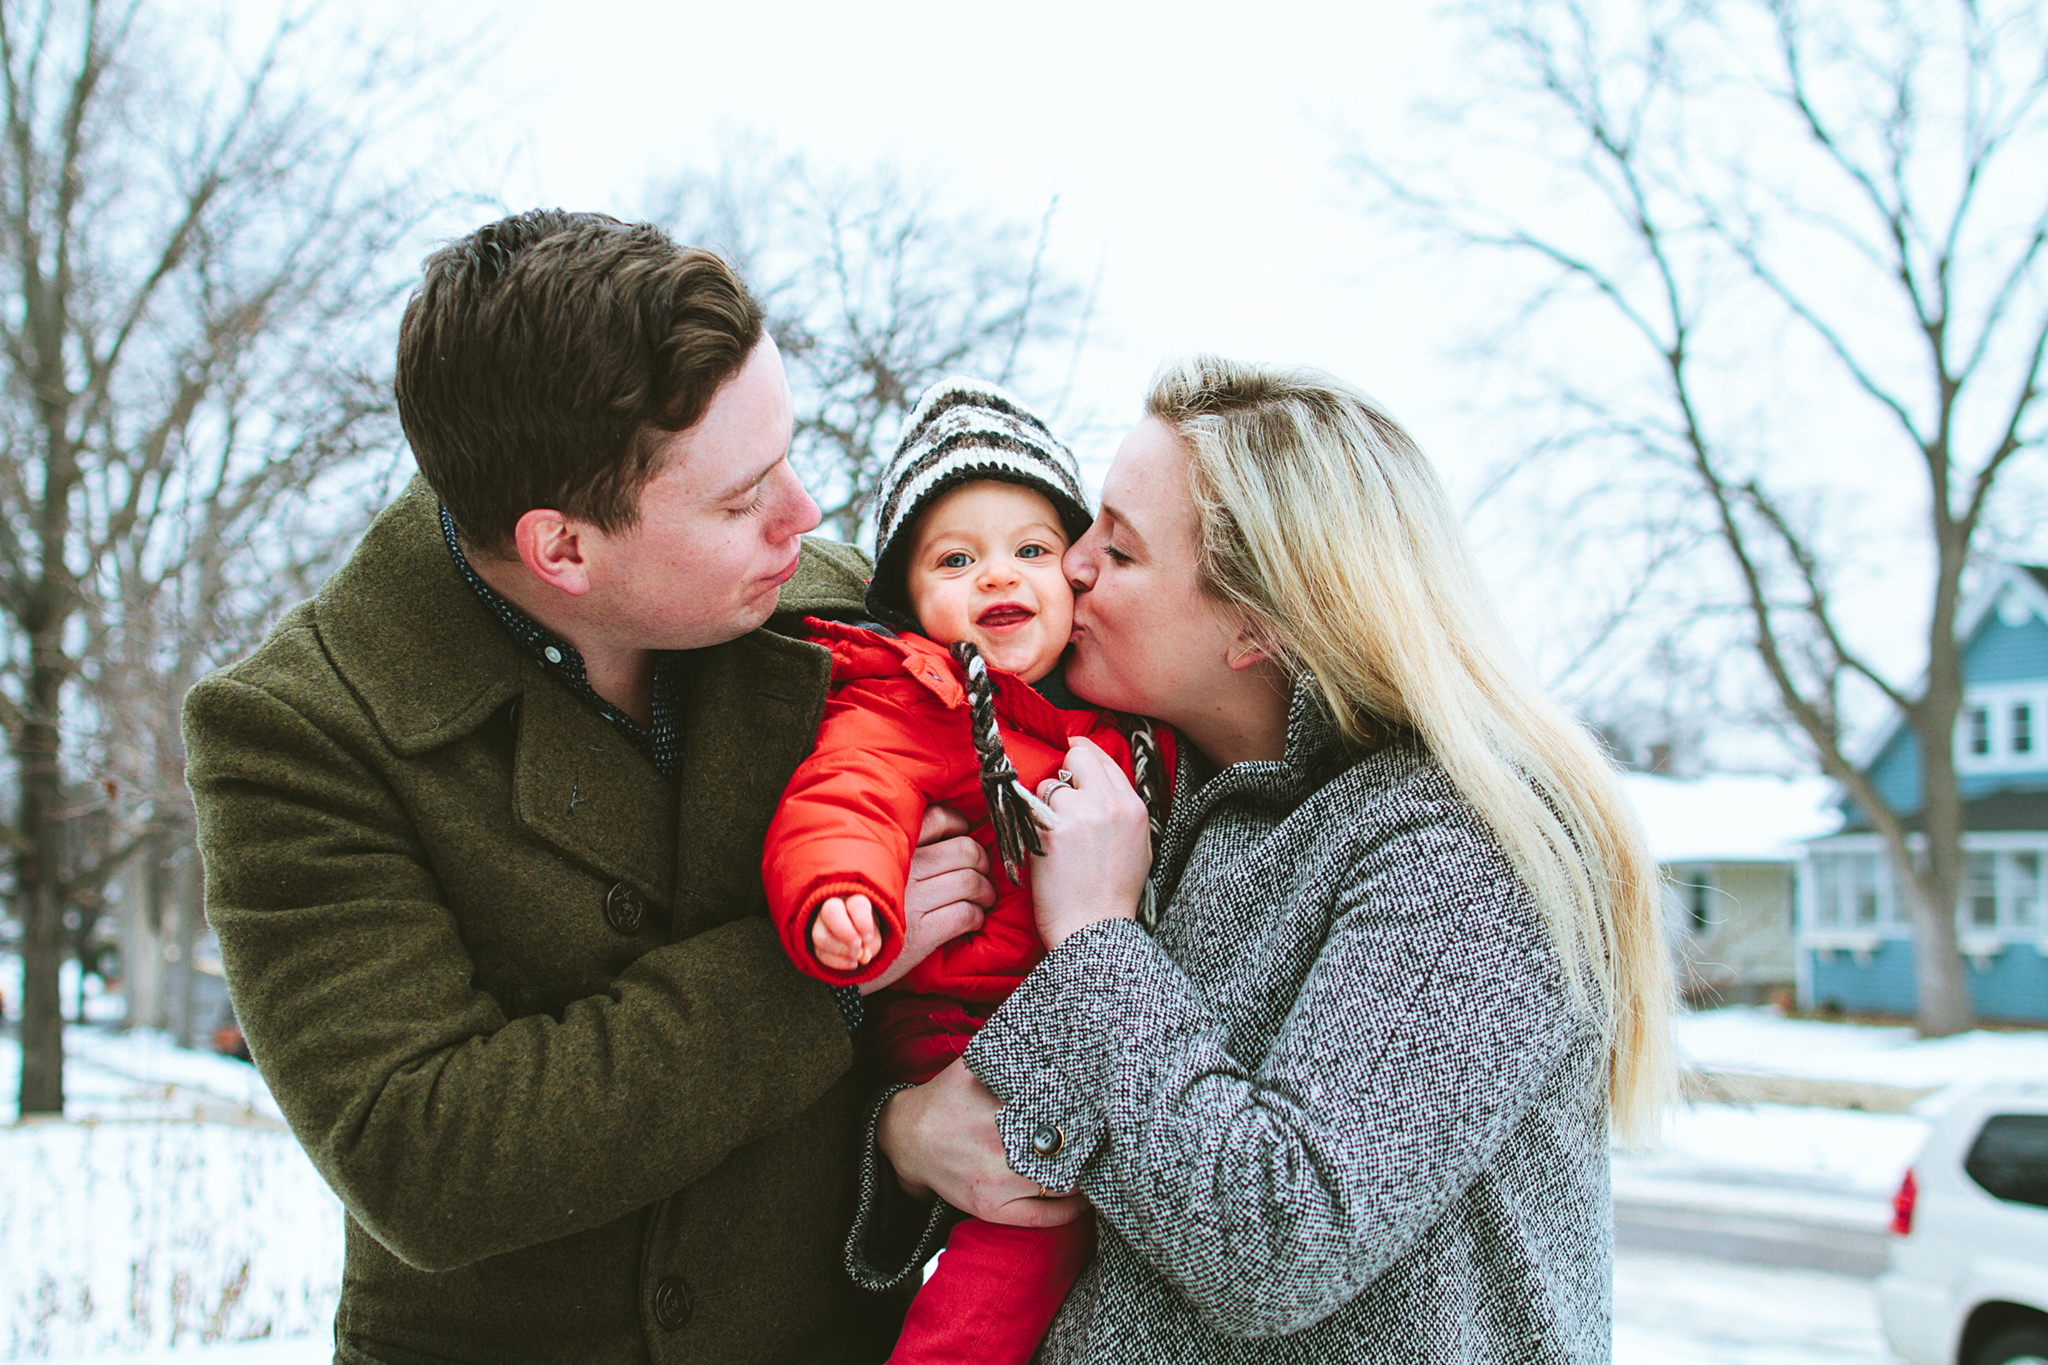 Family Portrait Photography in Minneapolis, Minnesota